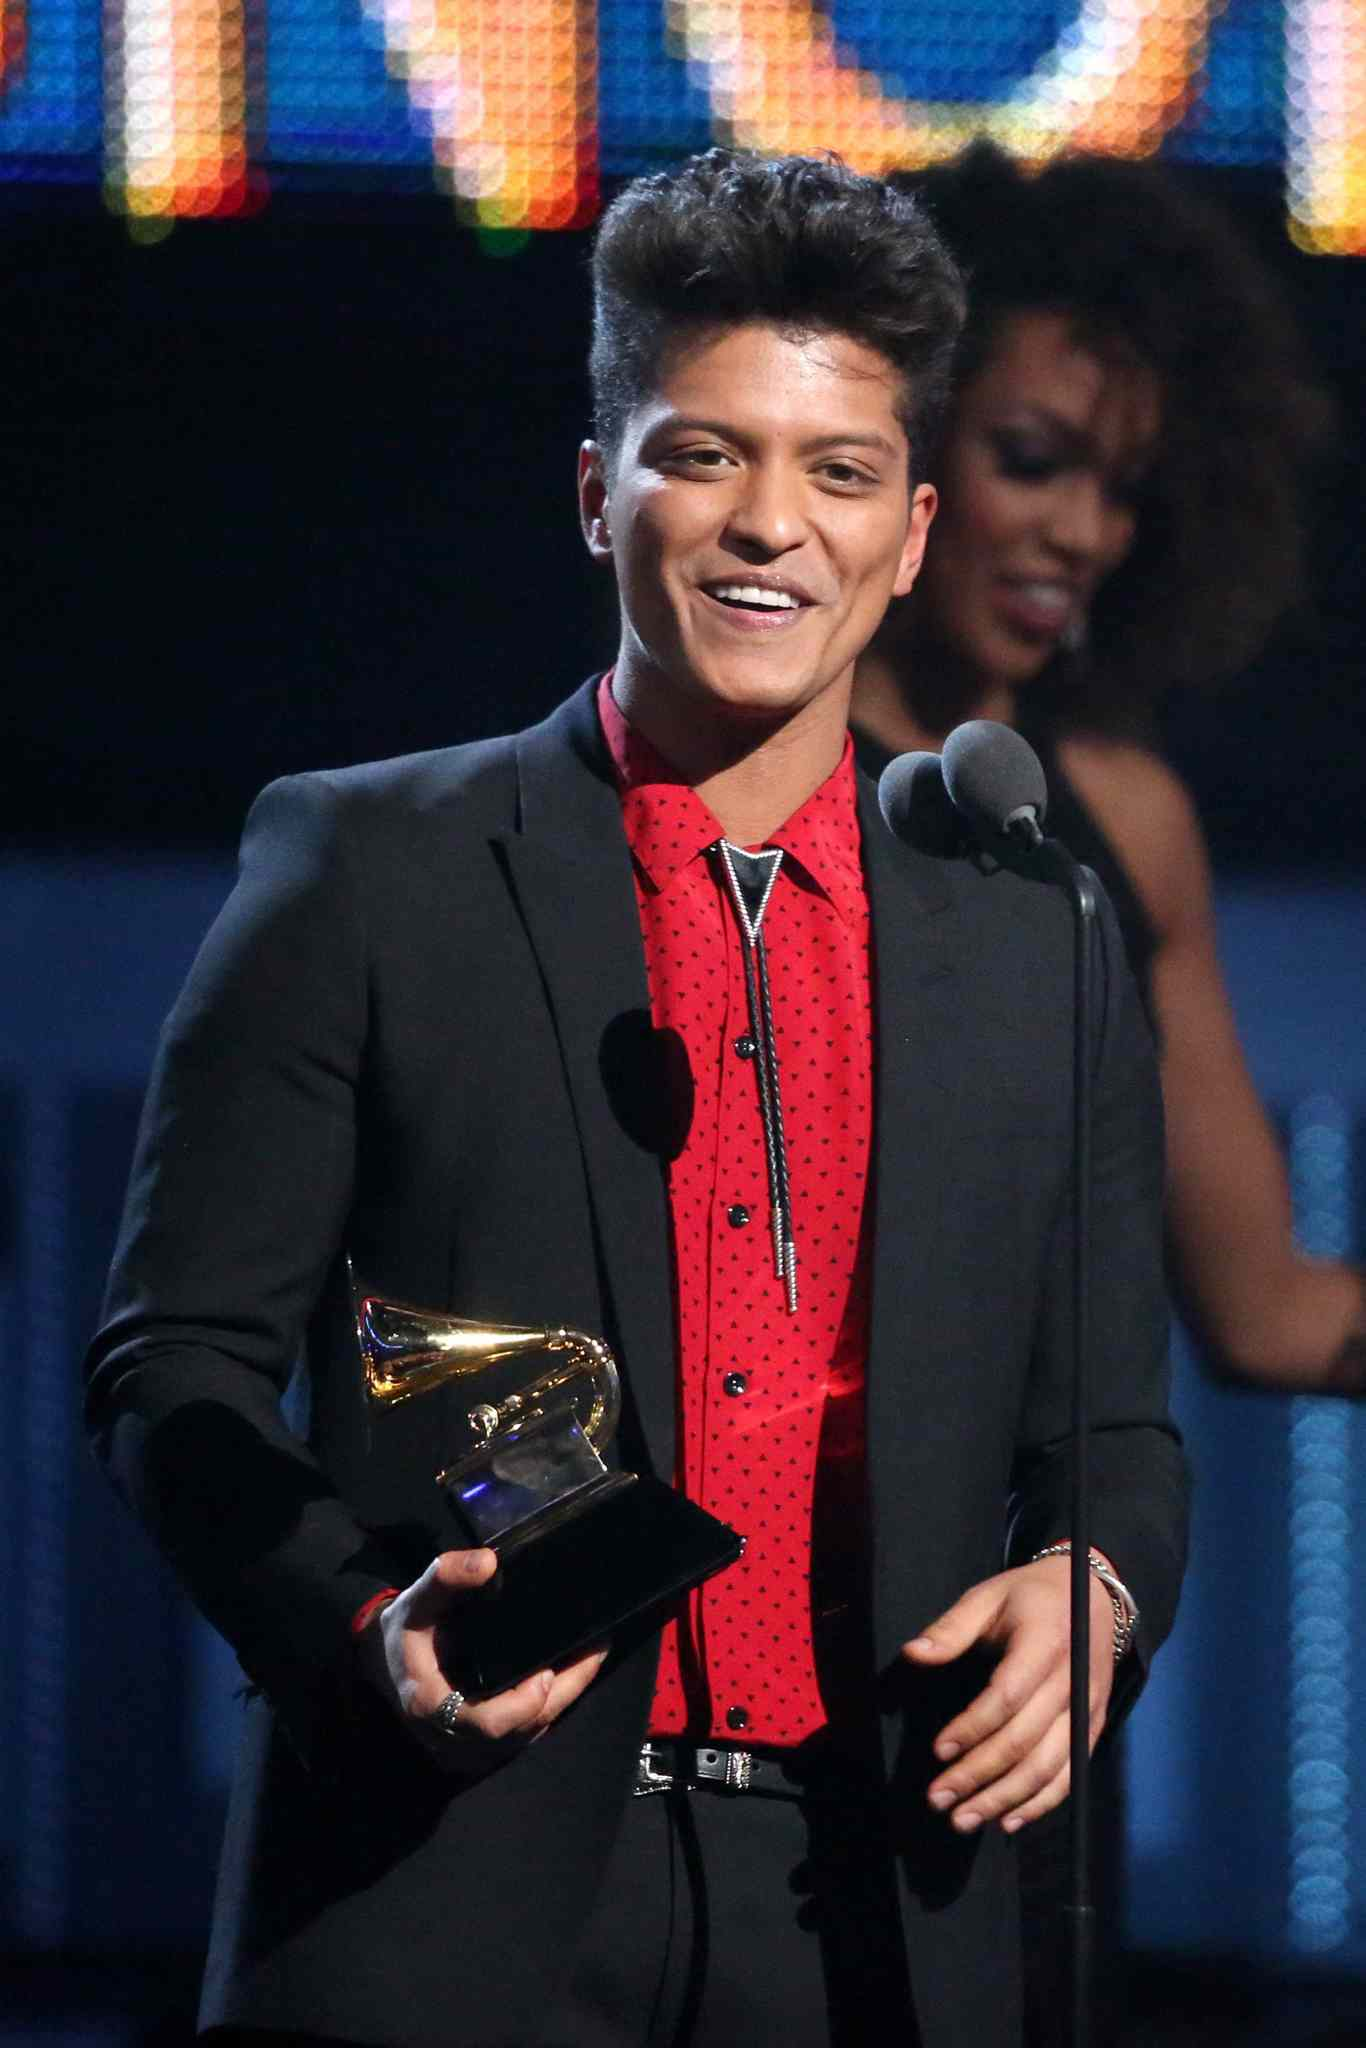 Bruno Mars accepts the award for best pop vocal album for Unorthodox Jukebox.